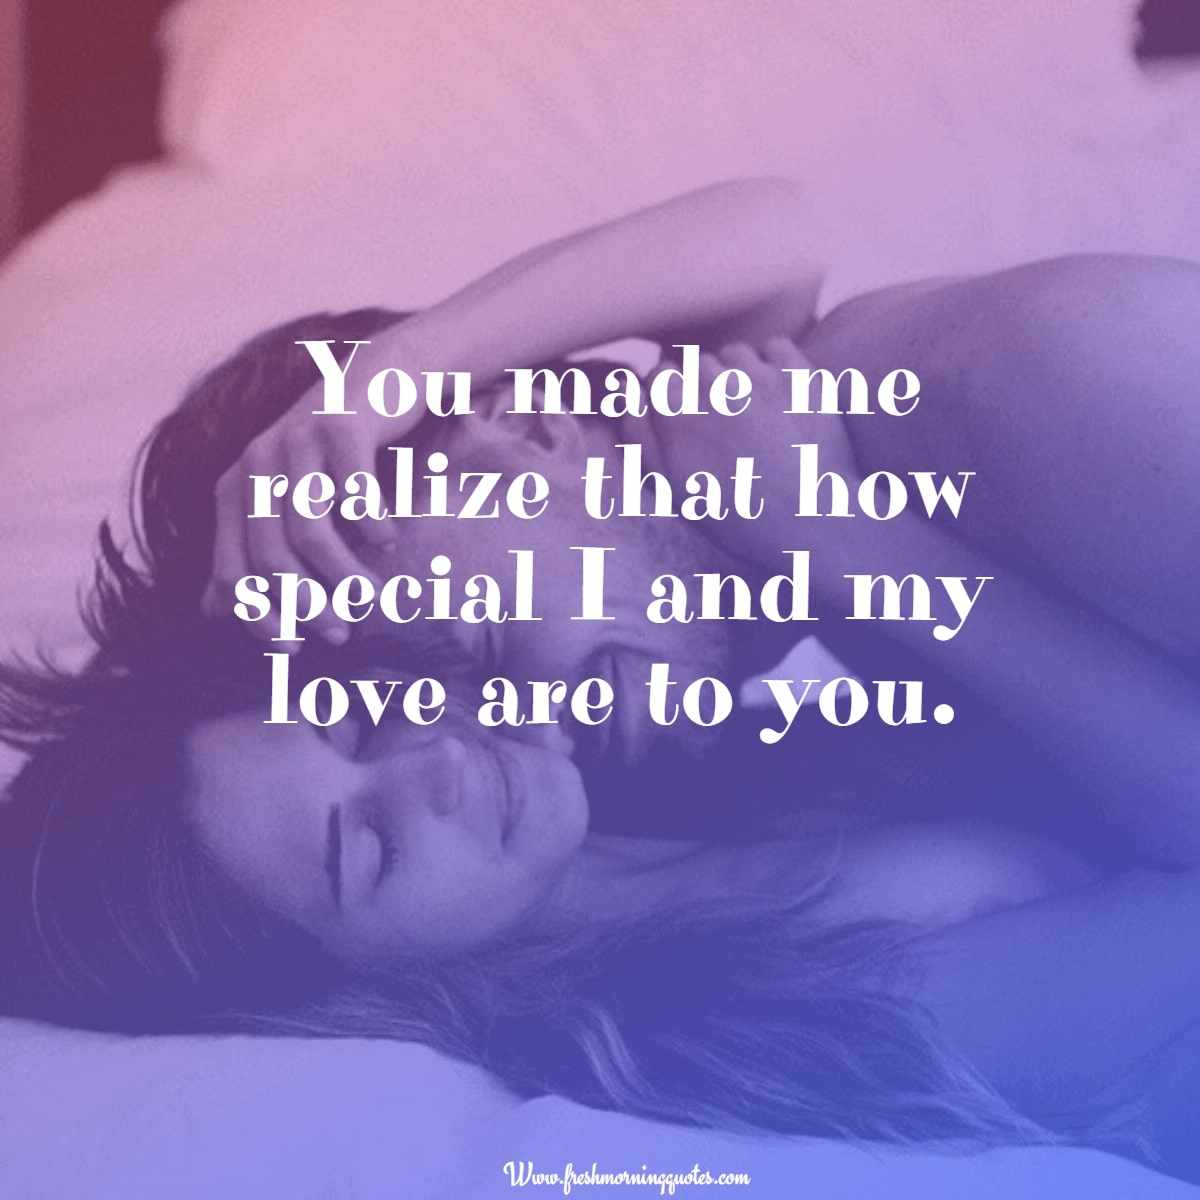 you made me realize how special you are